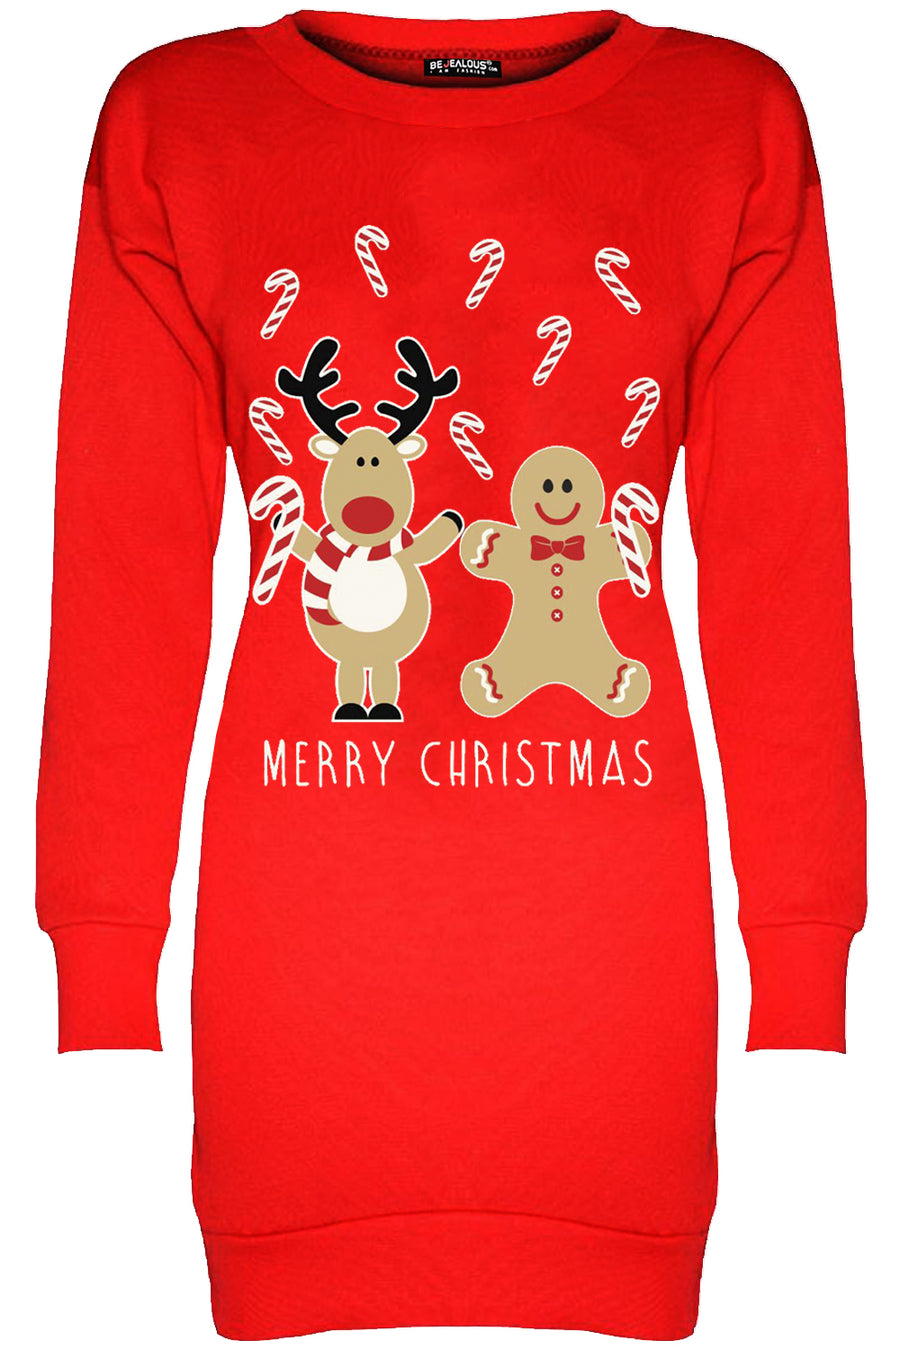 Merry Christmas Reindeer Print Jumper Dress - bejealous-com